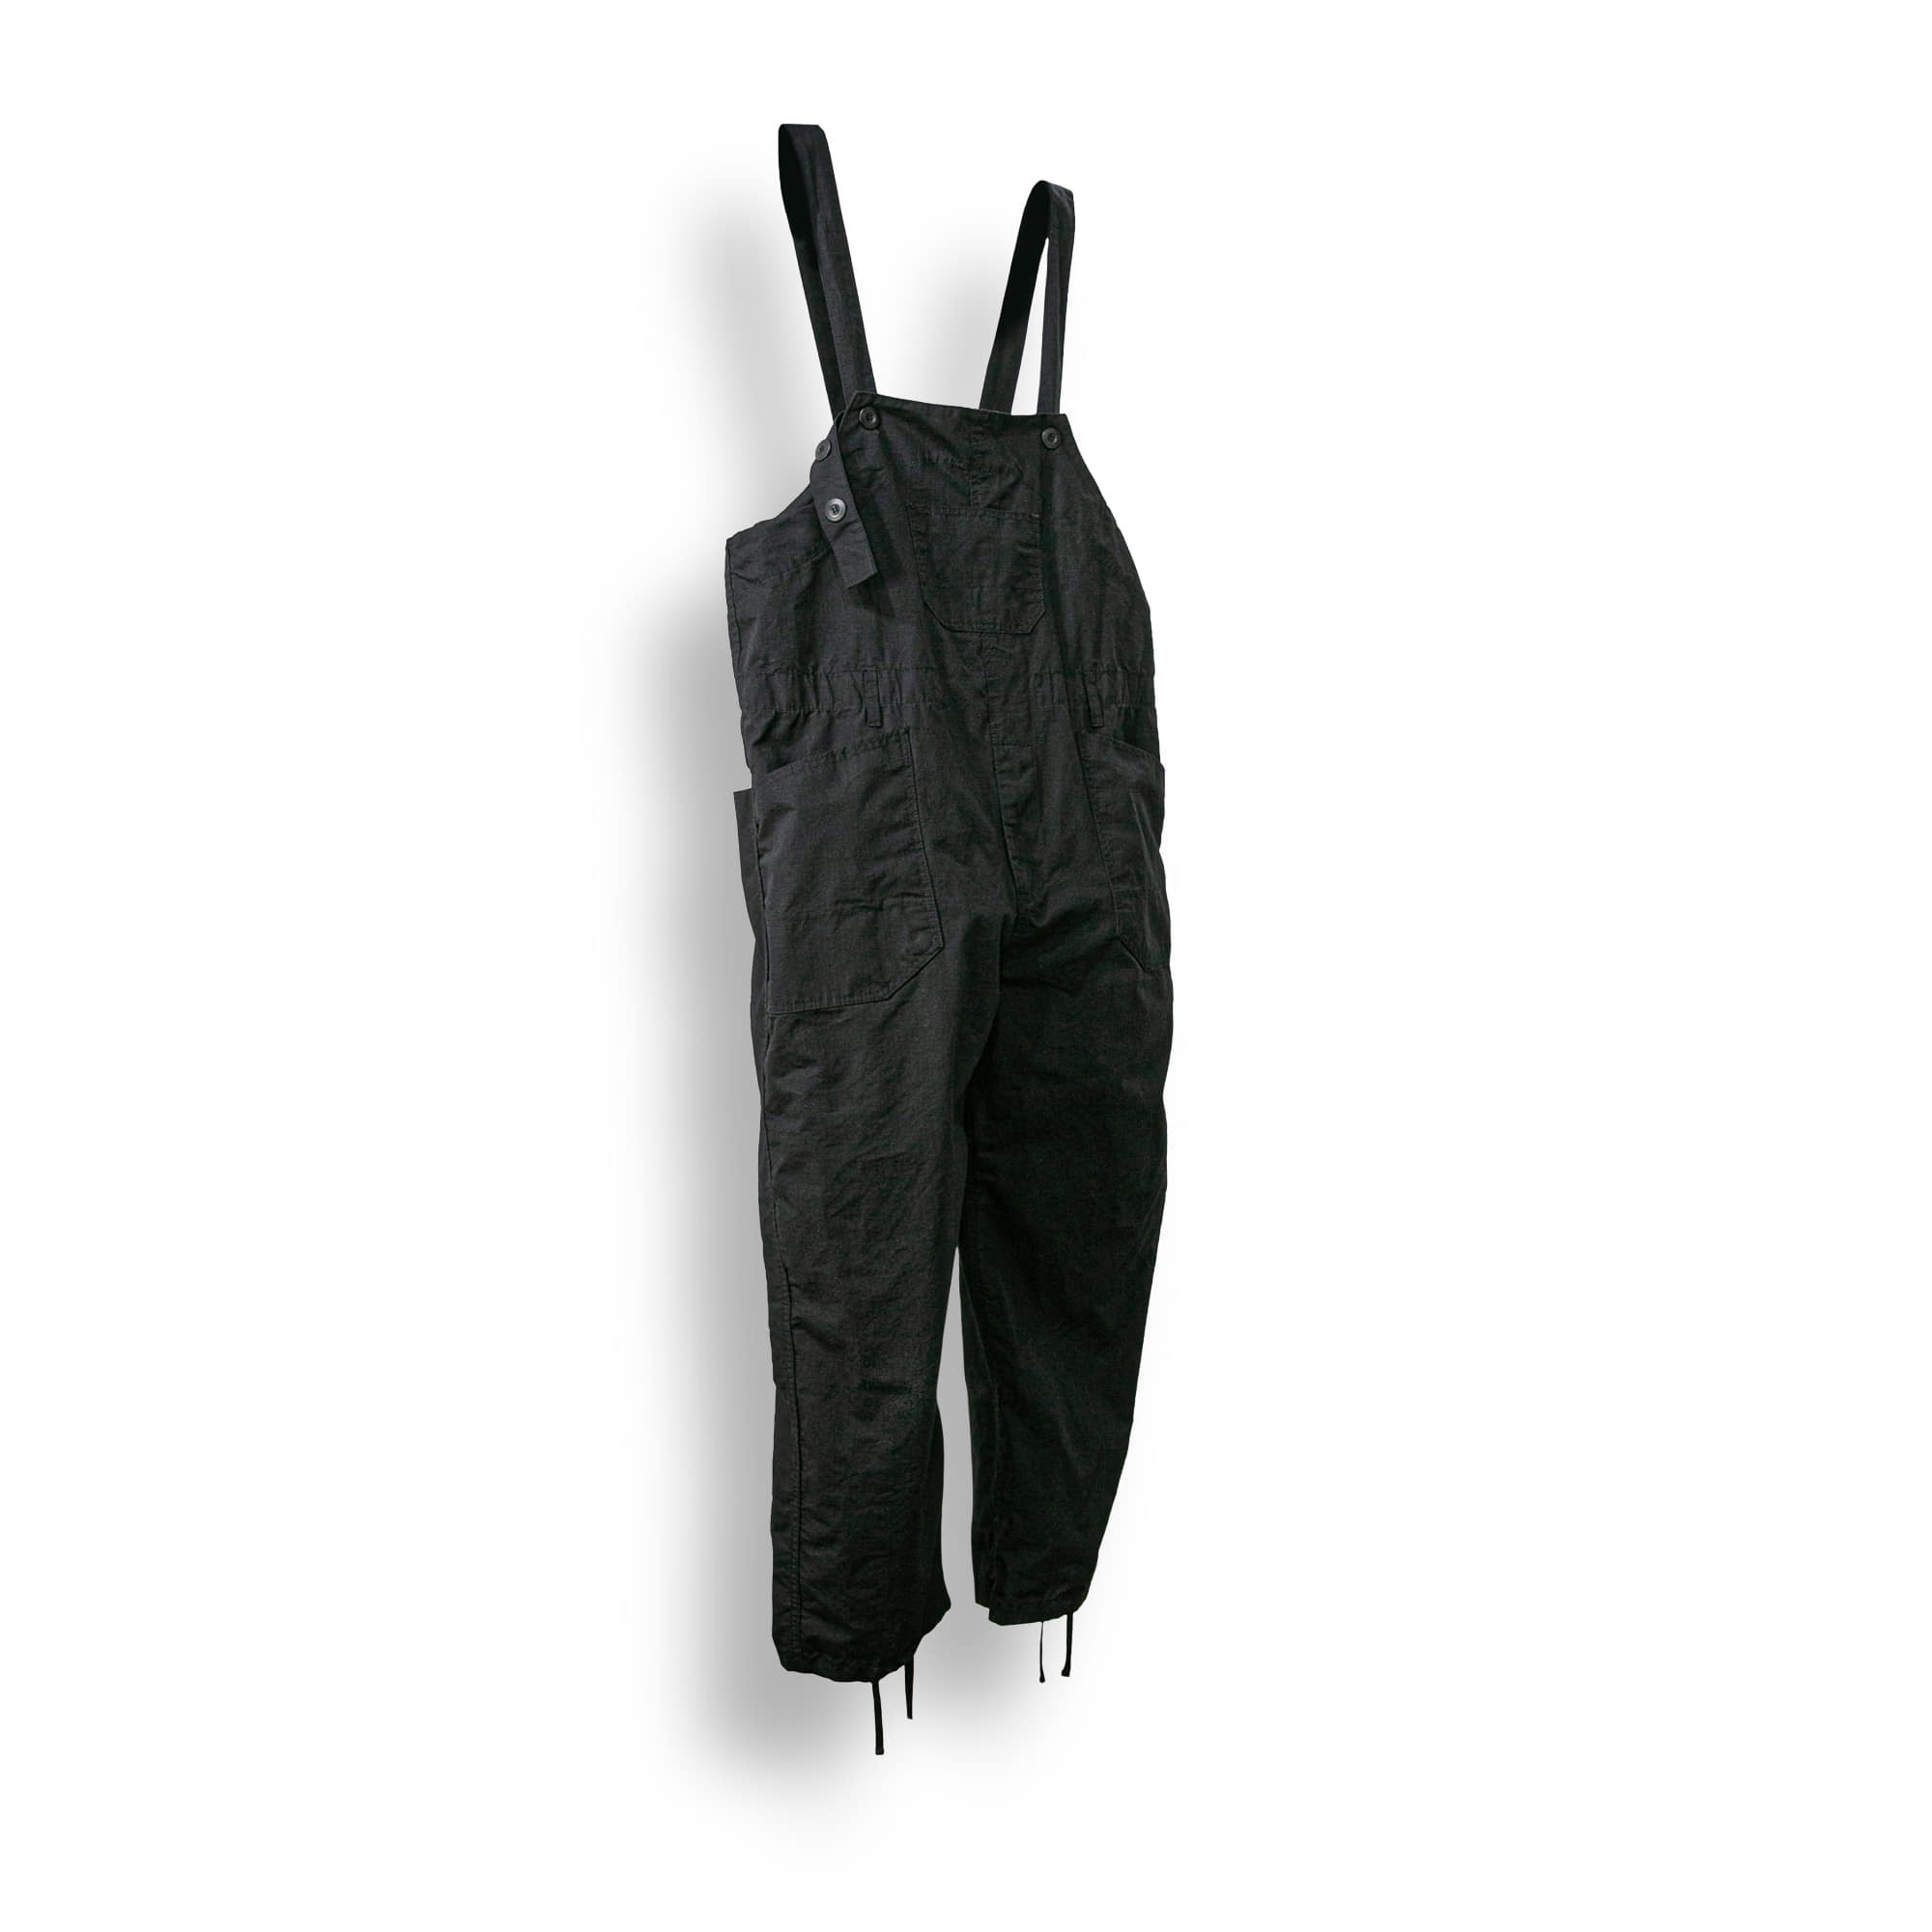 Ribstop 3-Button Overall - Black